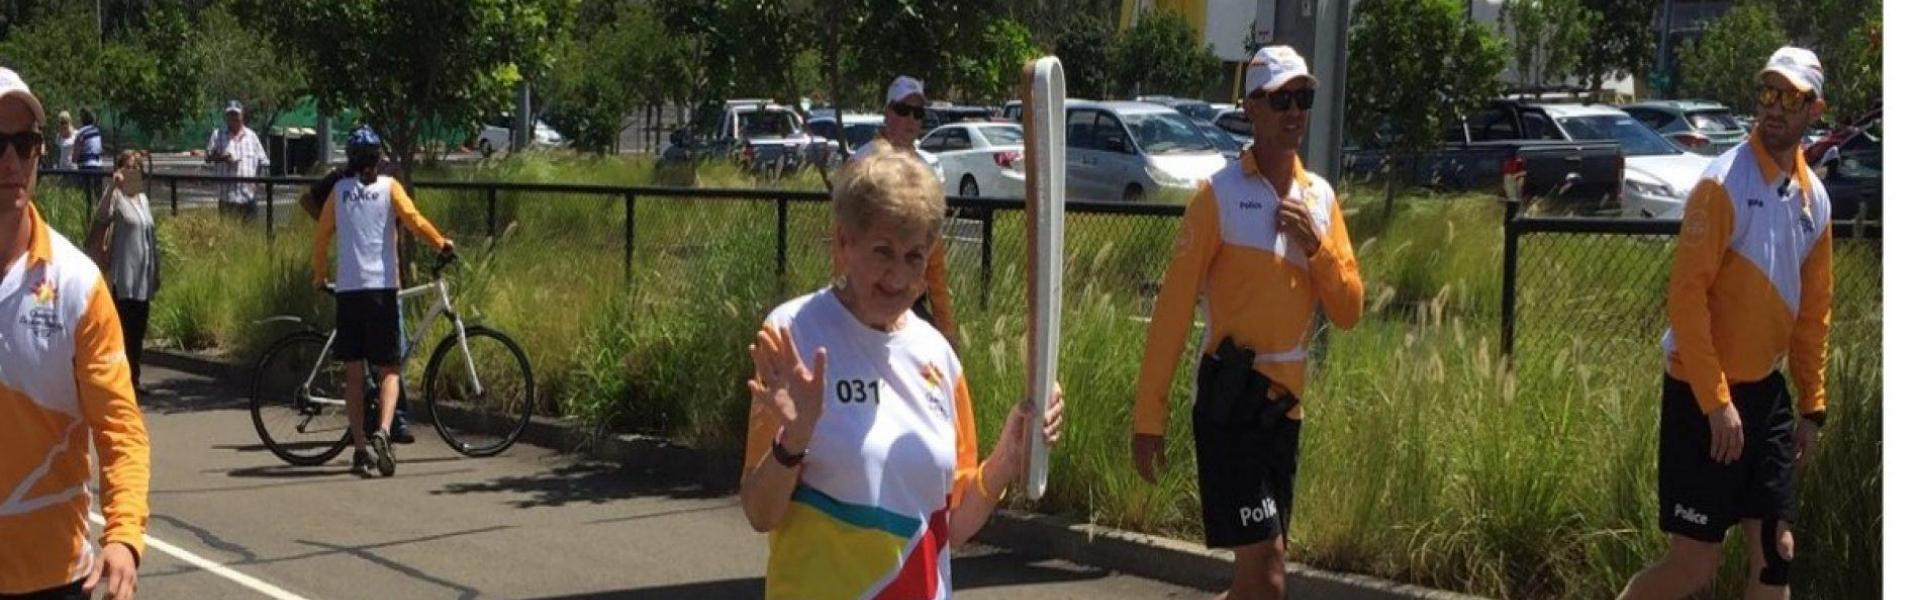 BP resident carries Commonwealth baton